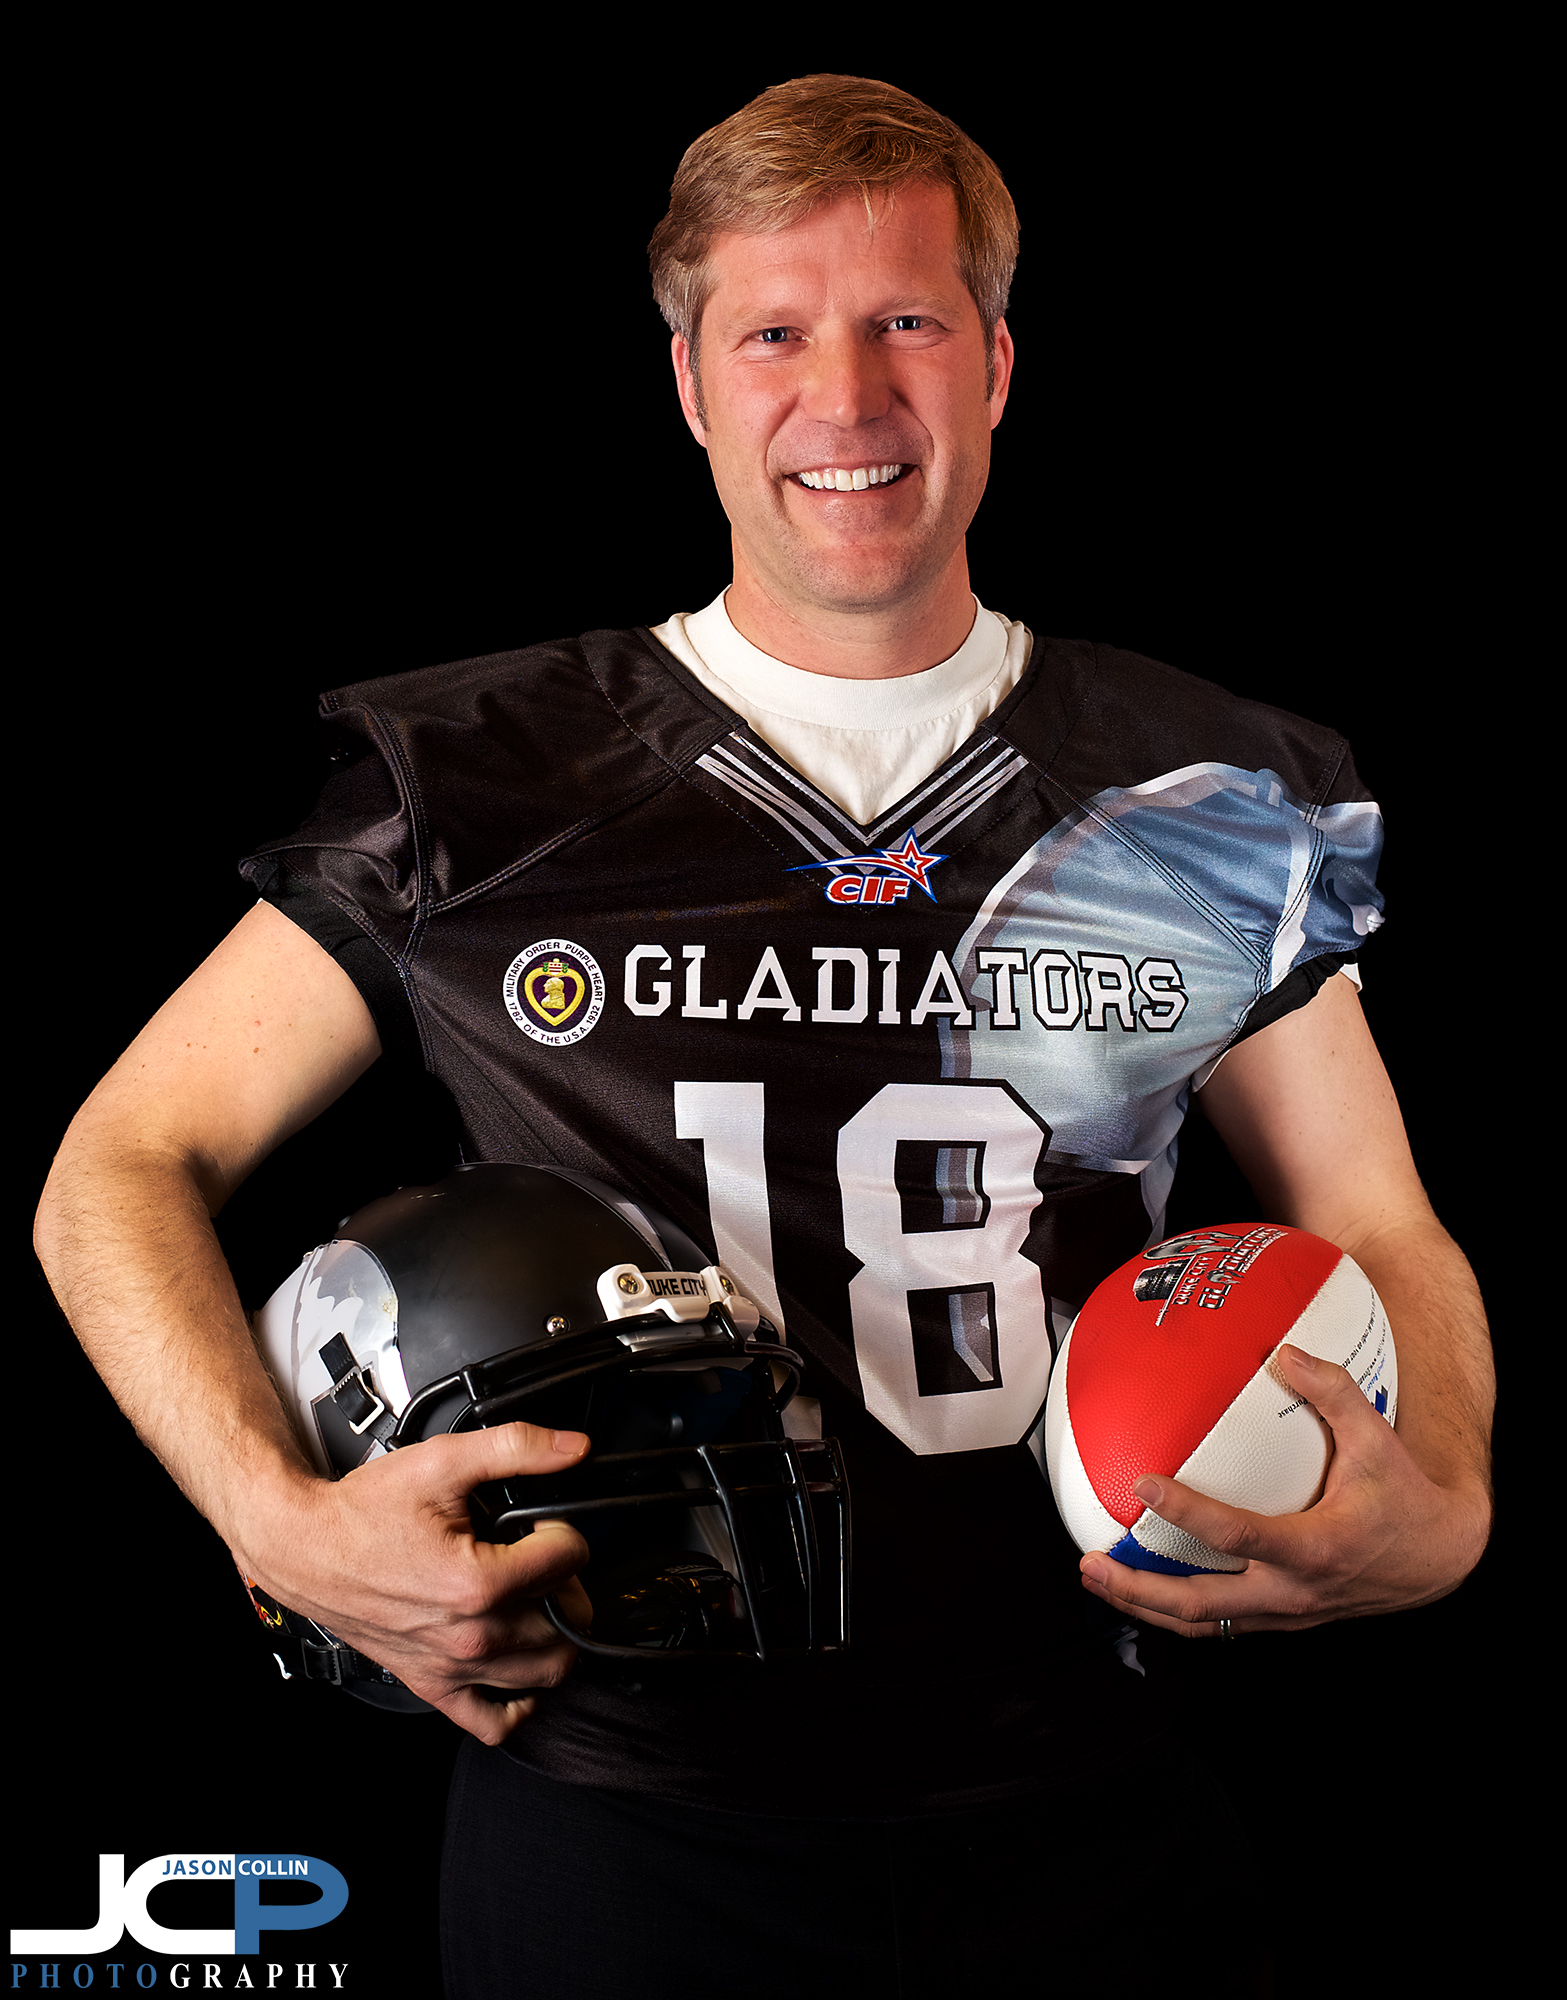 Mayor Tim Keller ready for his arena football game with the Duke City Gladiators! -Nikon D750 with Nikkor 50mm f/1.8G @ f/5.6 1/250th ISO 320 - Strobist: two Cheetahstand 12x55 gridded strip boxes with Nikon SB-800 speedlights to left and right